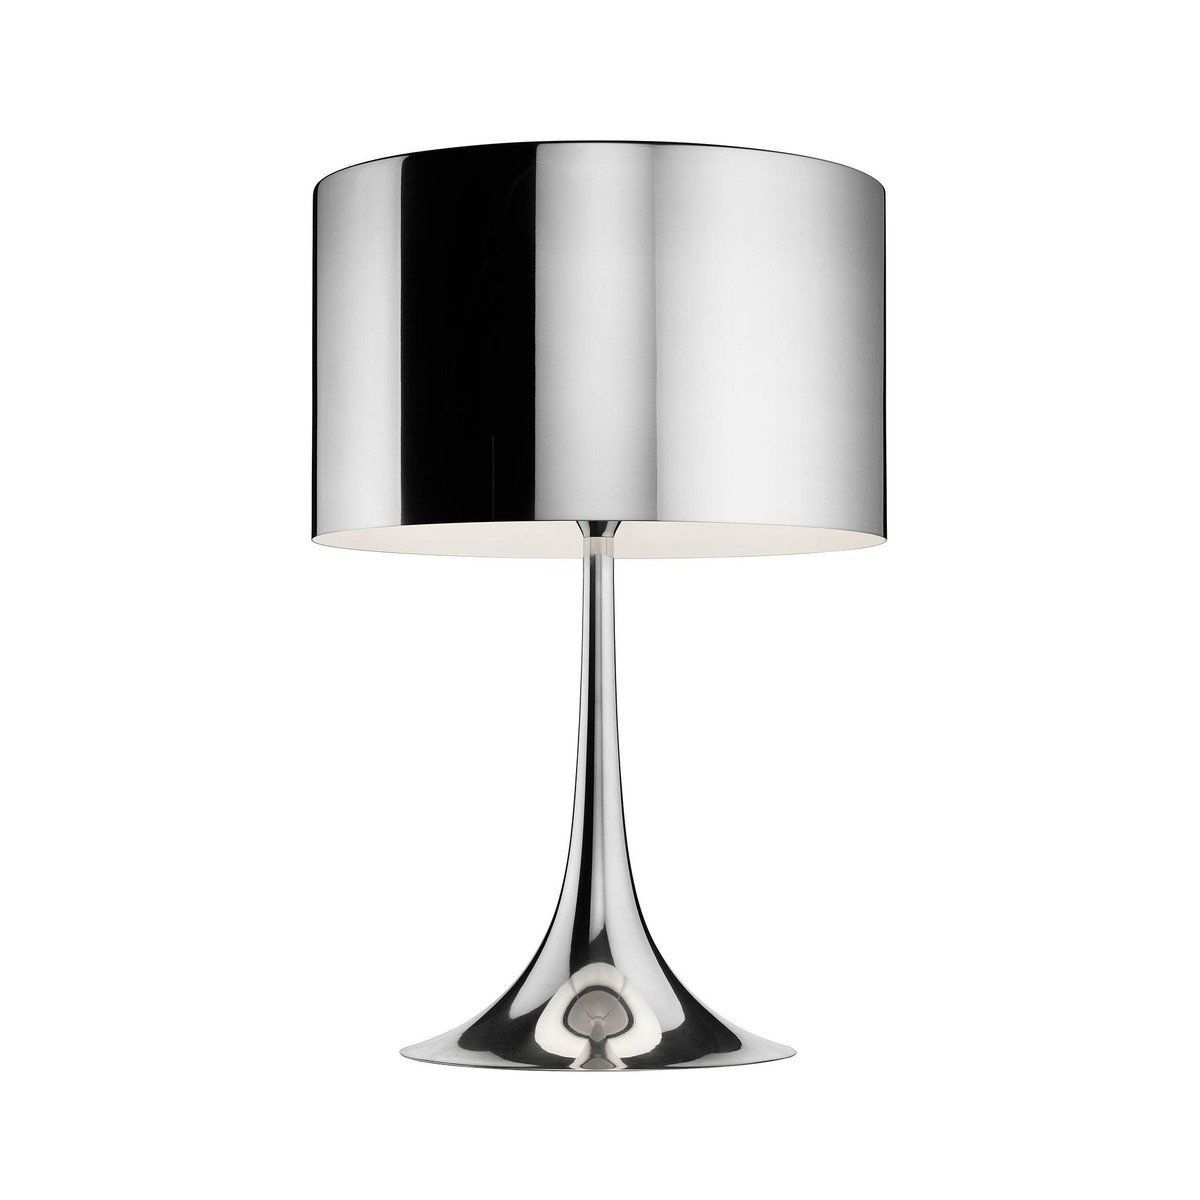 Spun Light T2 Table Lamp | Flos | AmbienteDirect.com for Flos Spun Table Lamp  110yll